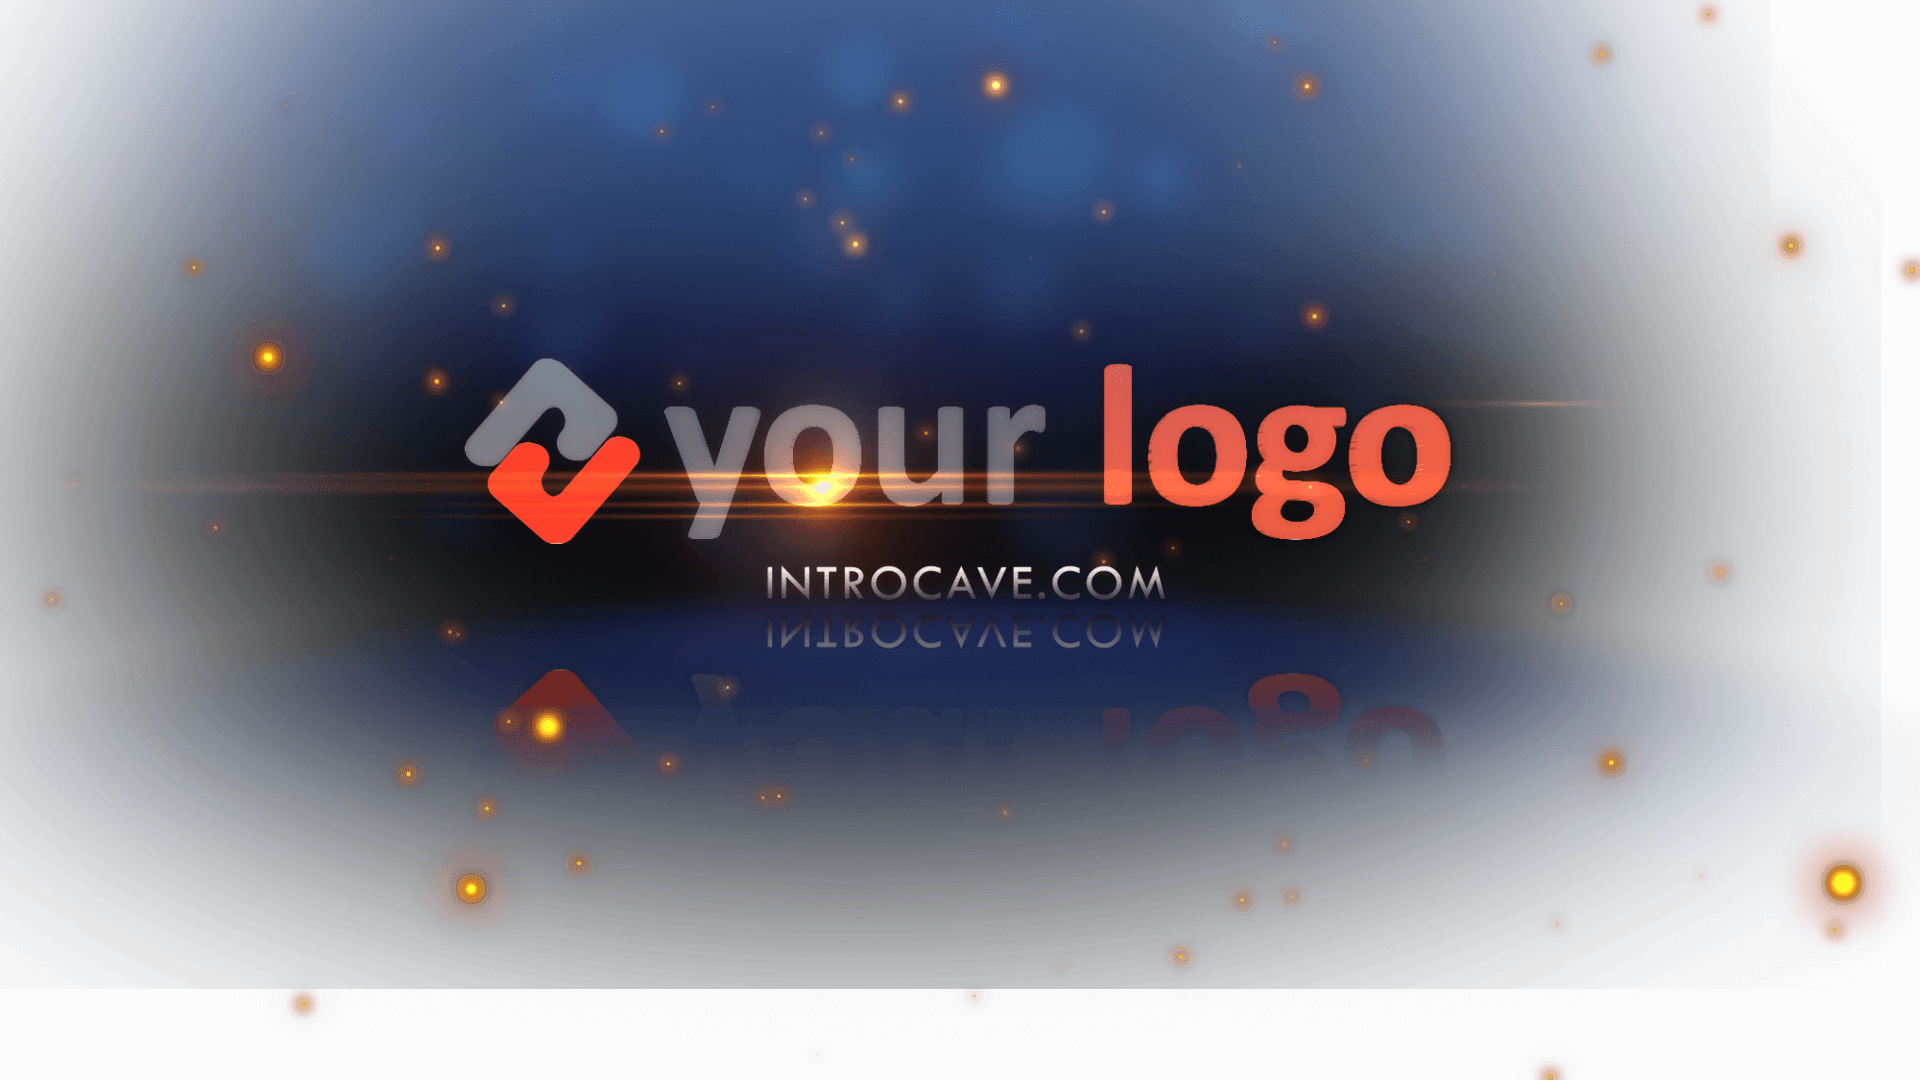 Customize the text for Particle Union - Logo to view your free intro movie.